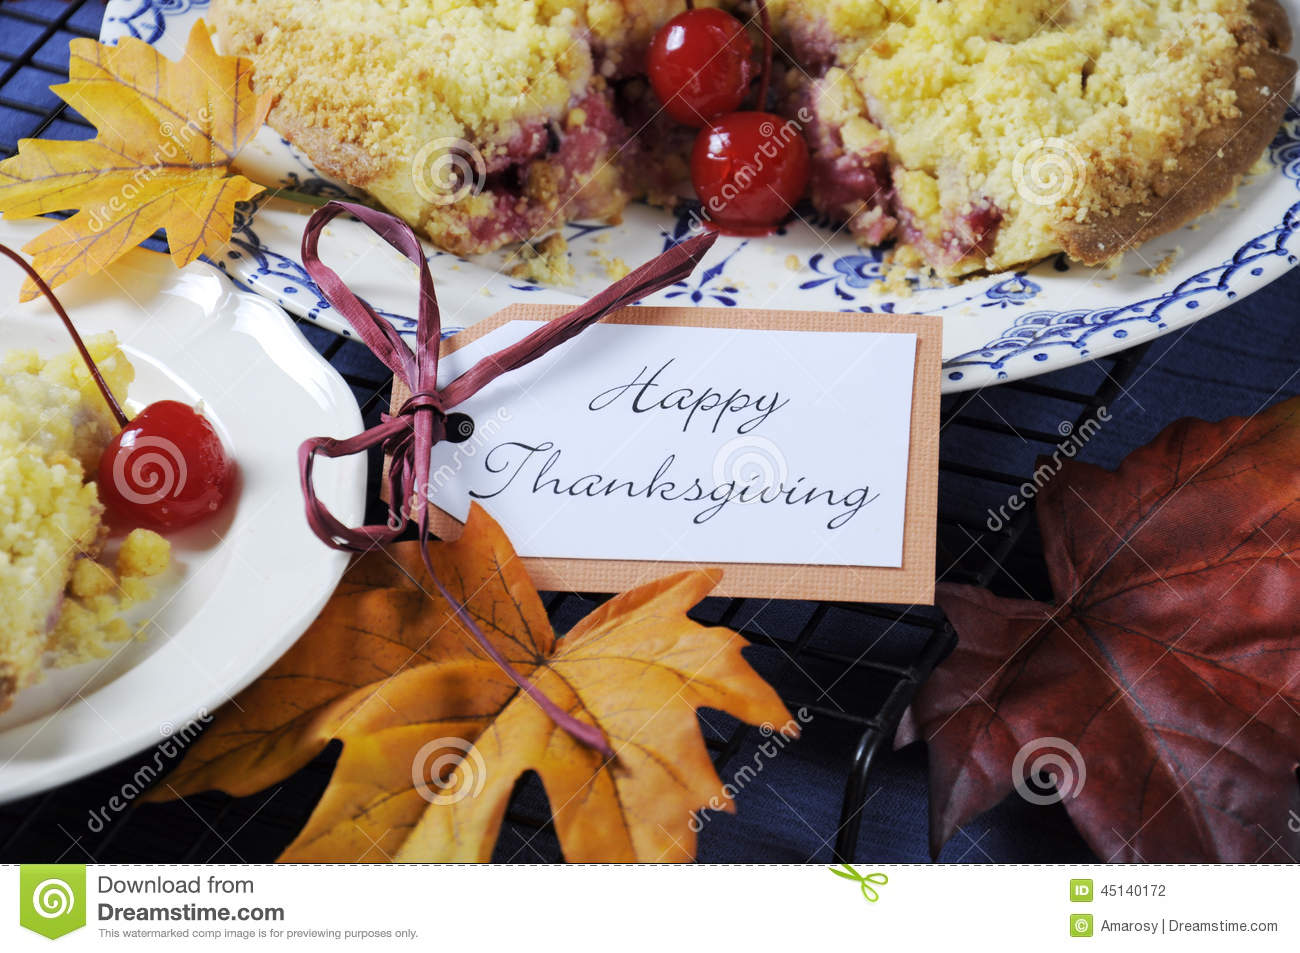 Happy Thanksgiving Table Setting With Cherry Apple Crumble Pie